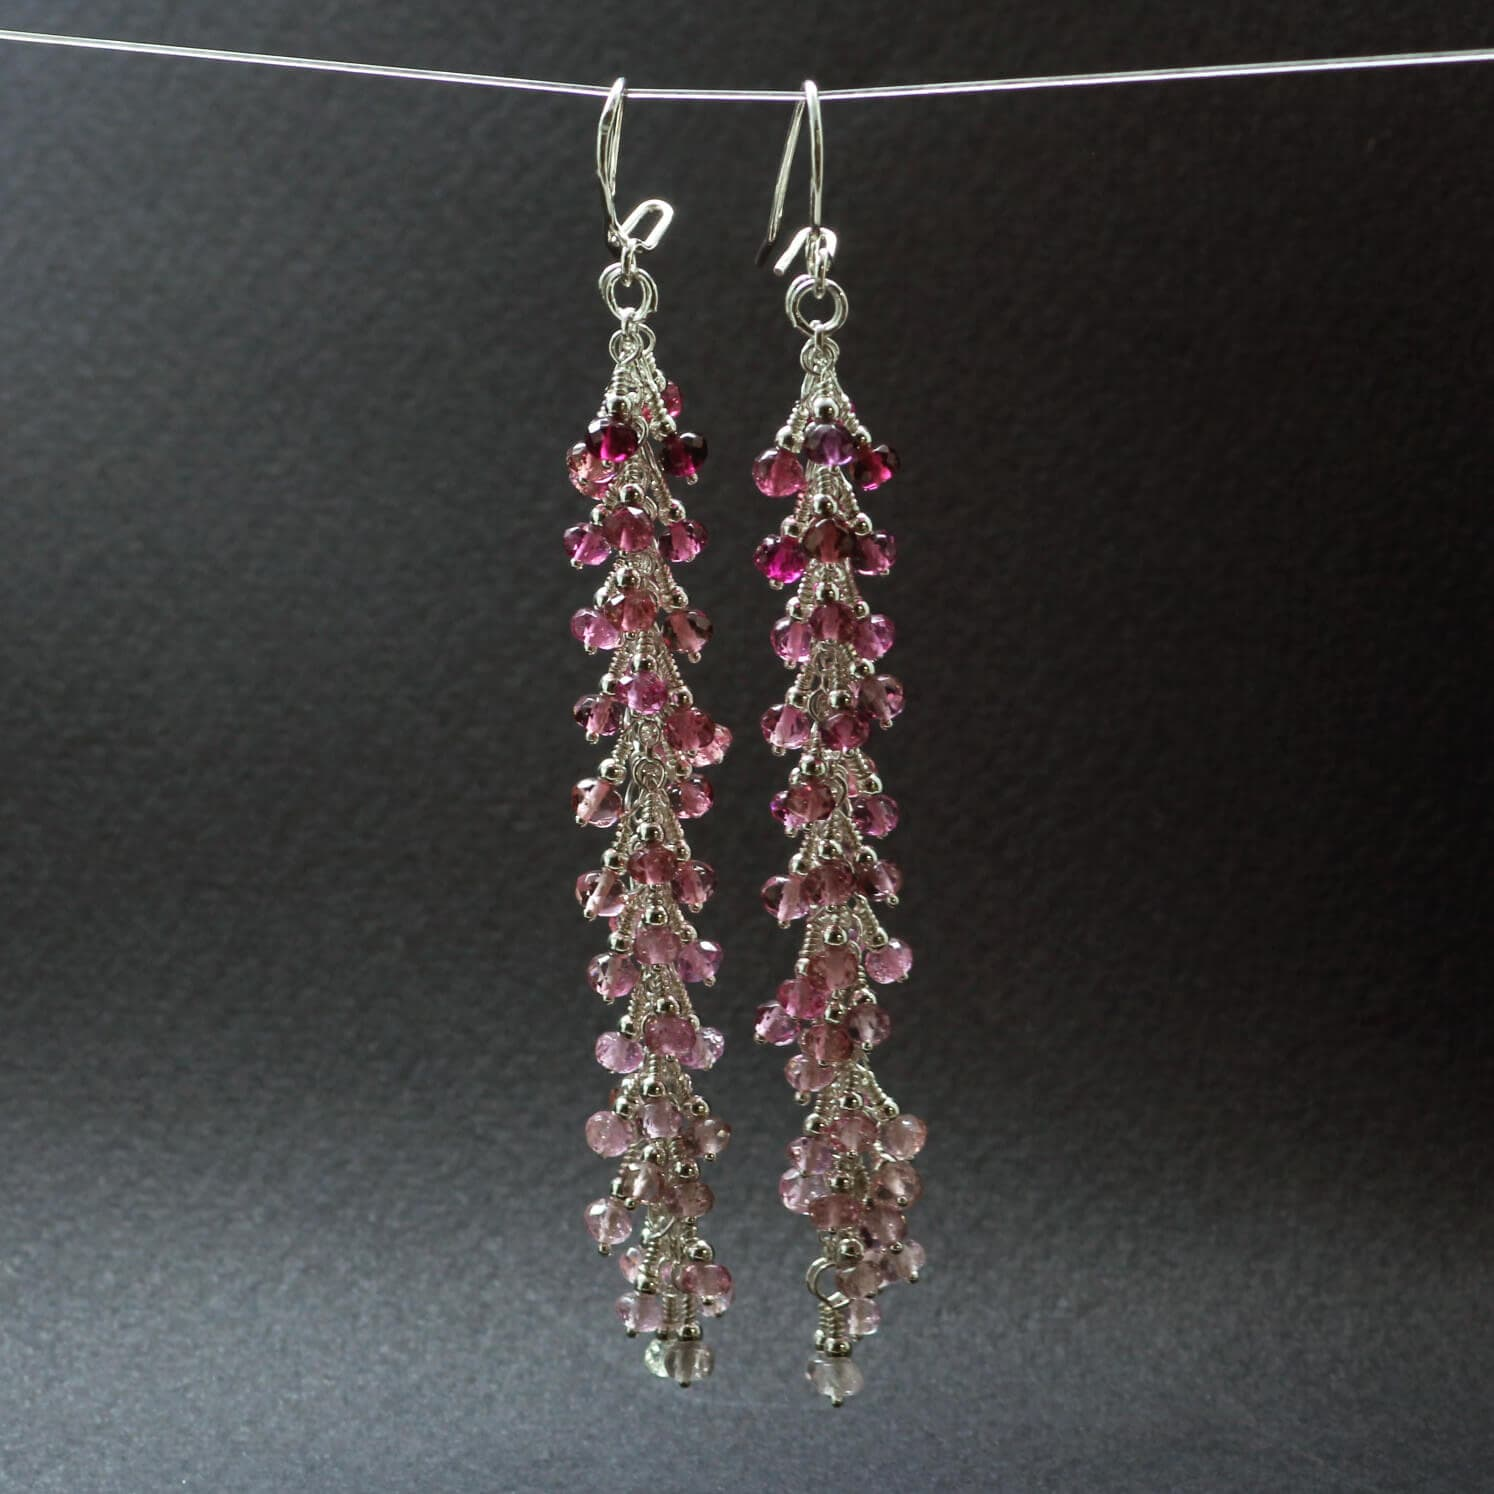 Pink Tourmaline gemstone Sterling Silver earrings handmade unique design